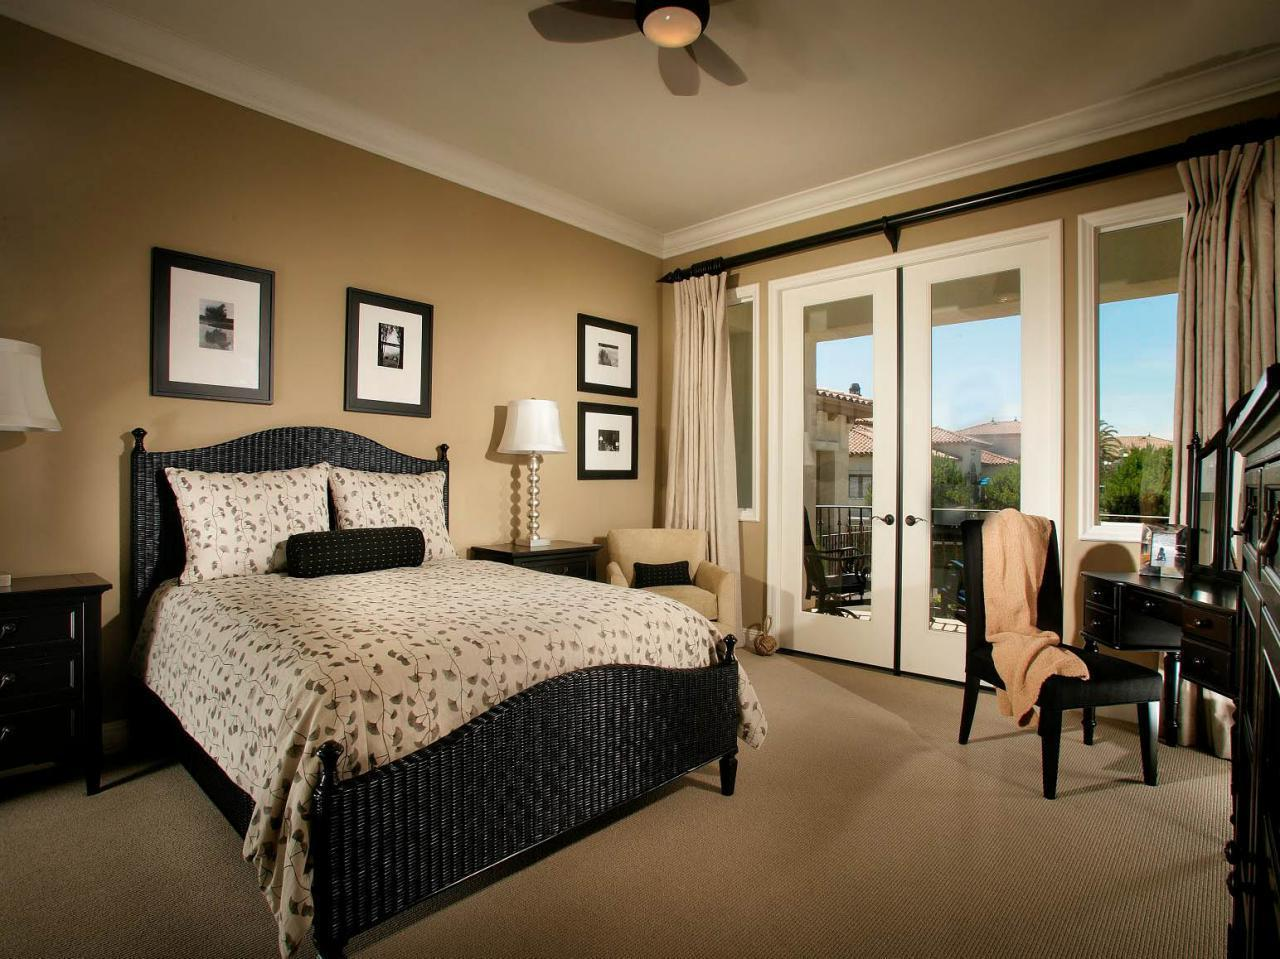 Traditional Bedroom With Neutral Color  (Image 8 of 9)